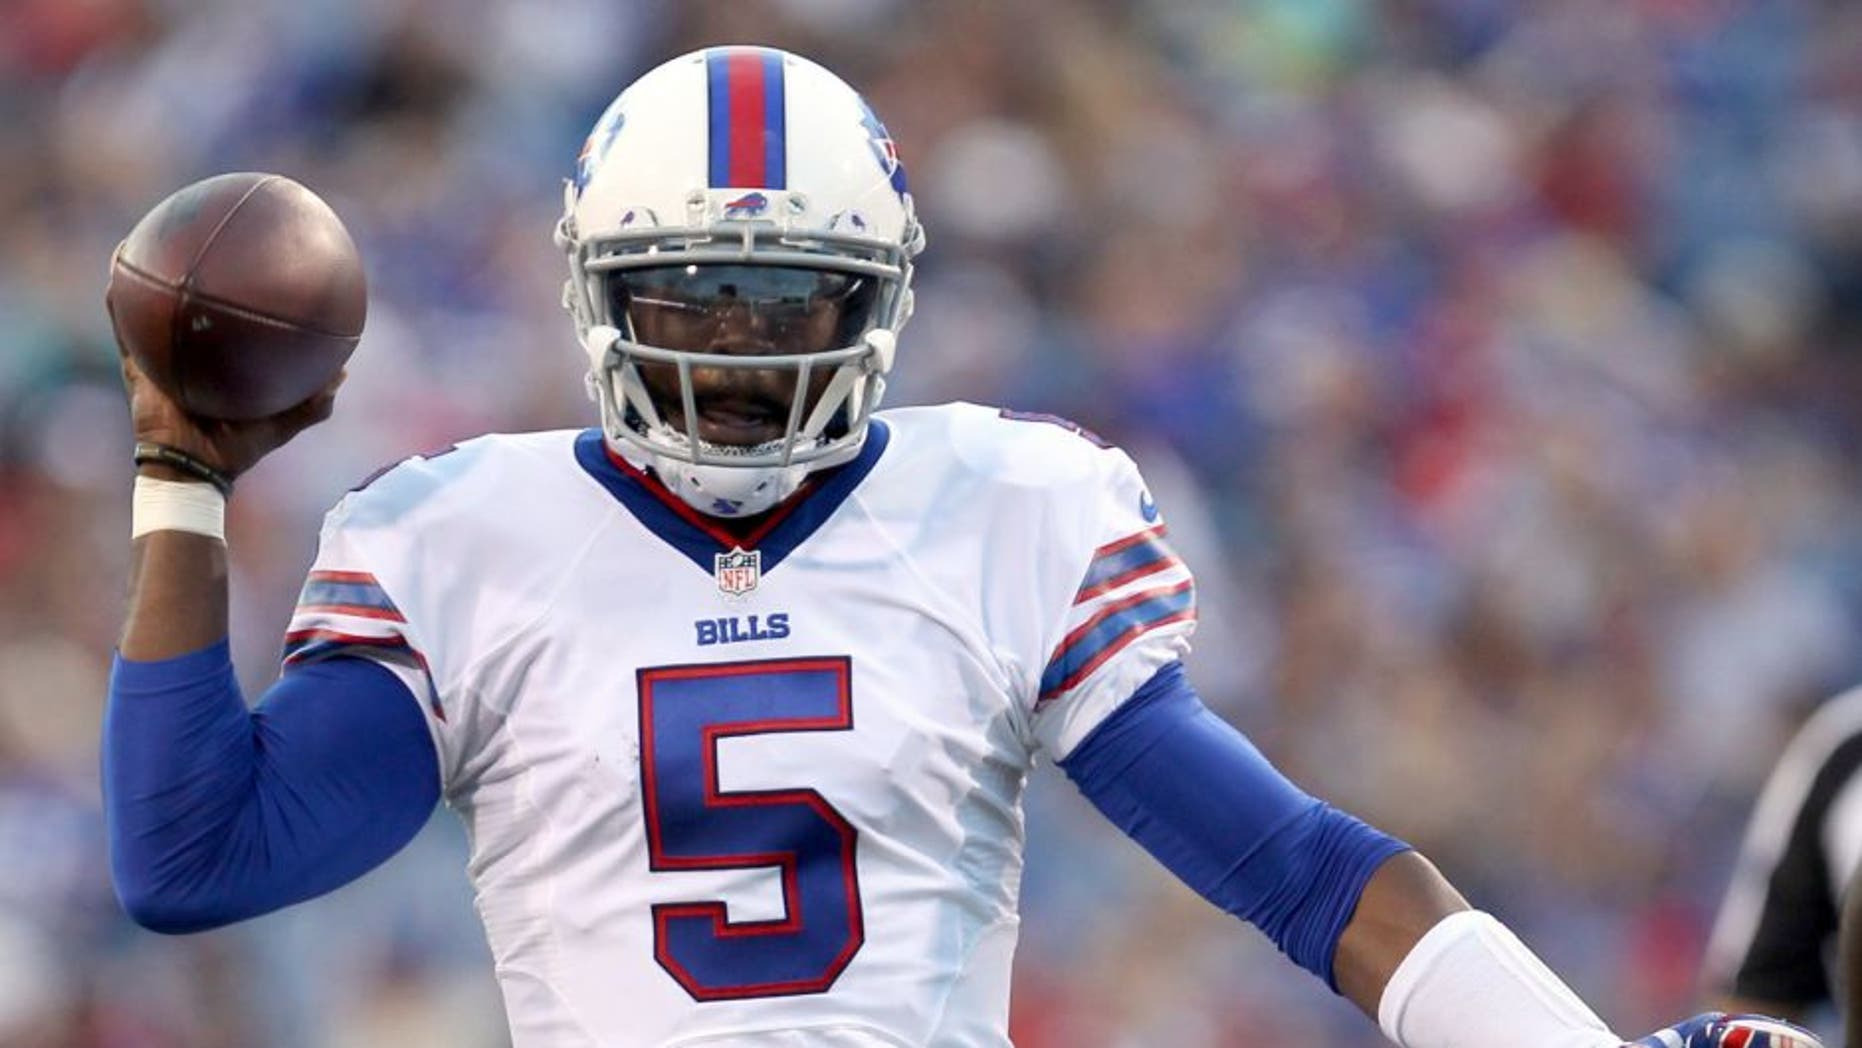 Aug 14, 2015; Orchard Park, NY, USA; Buffalo Bills quarterback Tyrod Taylor (5) throws a pass during the first half against the Carolina Panthers in a preseason NFL football game at Ralph Wilson Stadium. Mandatory Credit: Timothy T. Ludwig-USA TODAY Sports